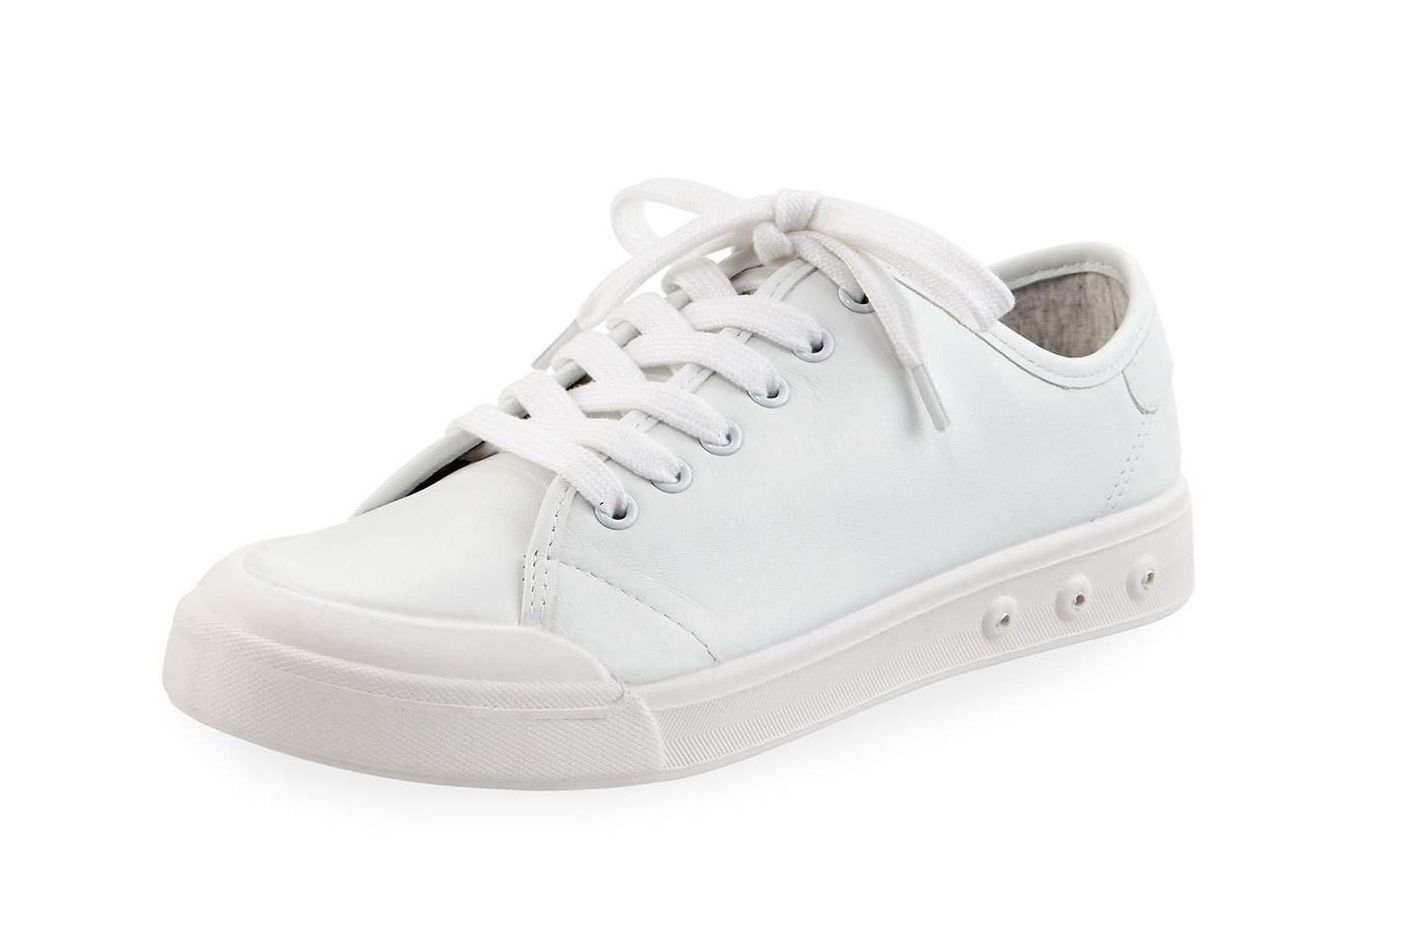 Rag & Bone Lace-Up Low Top Sneaker